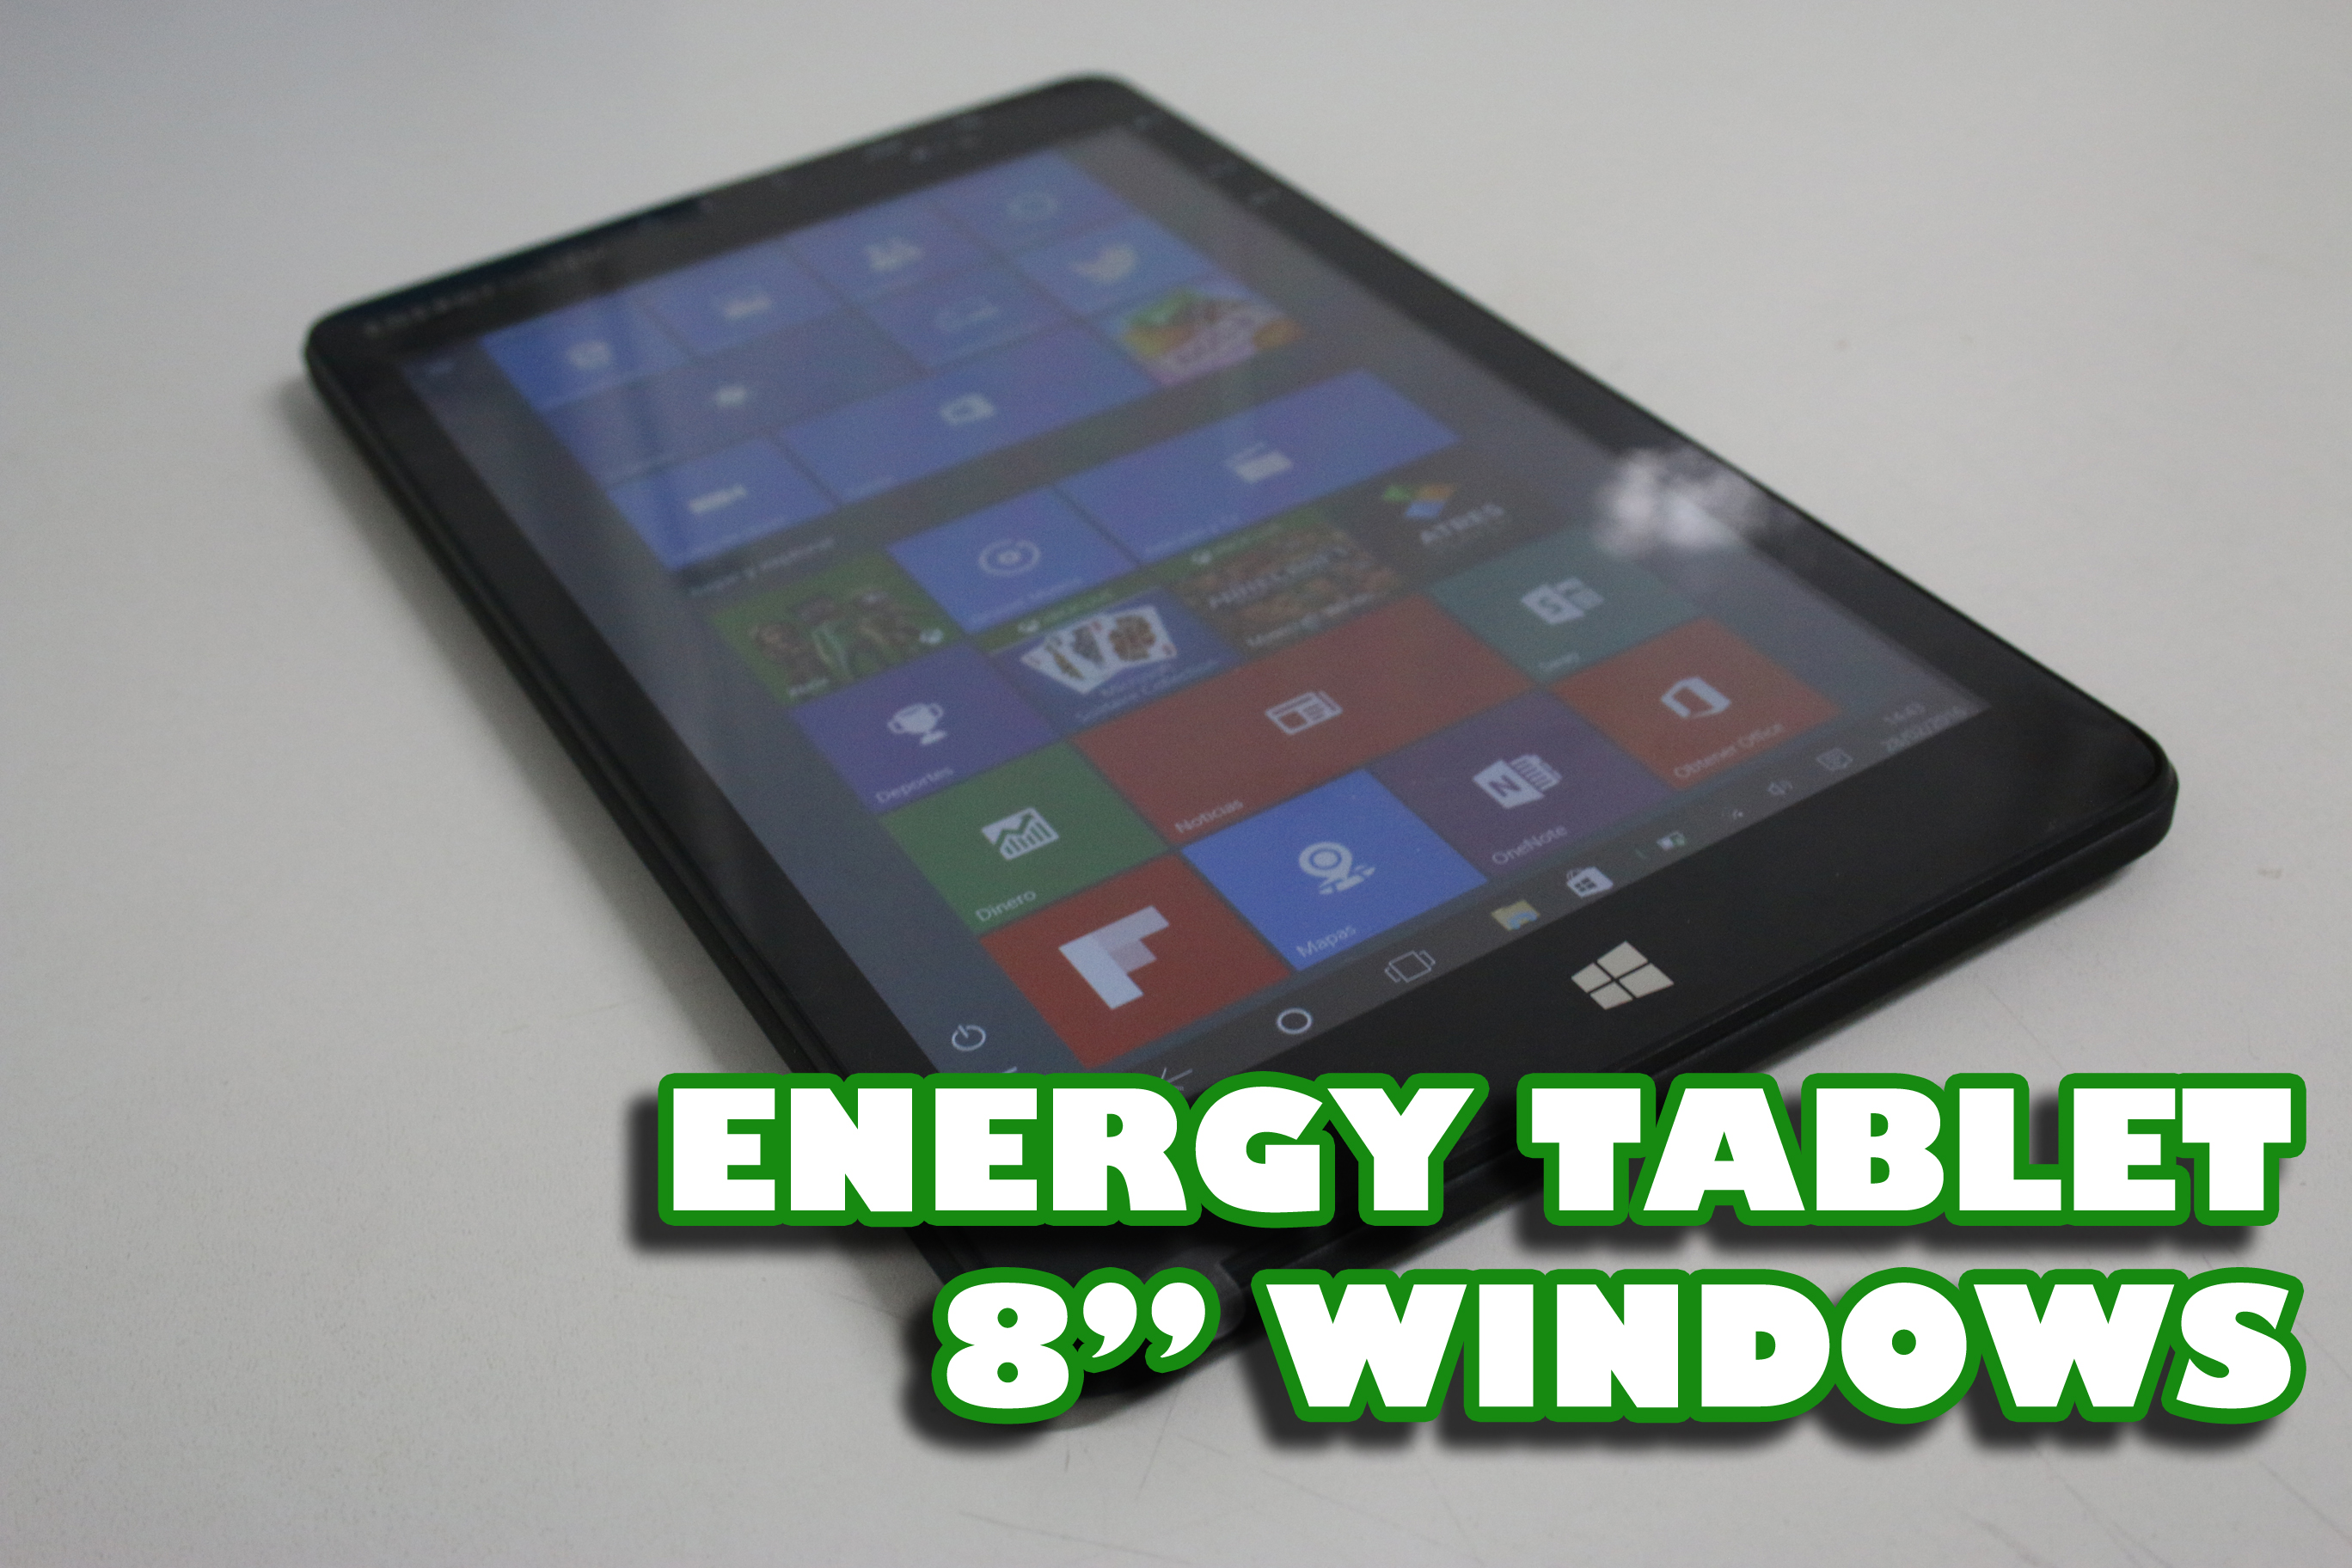 Energy Tablet 8″ Windows, buena tablet para productividad y ocio